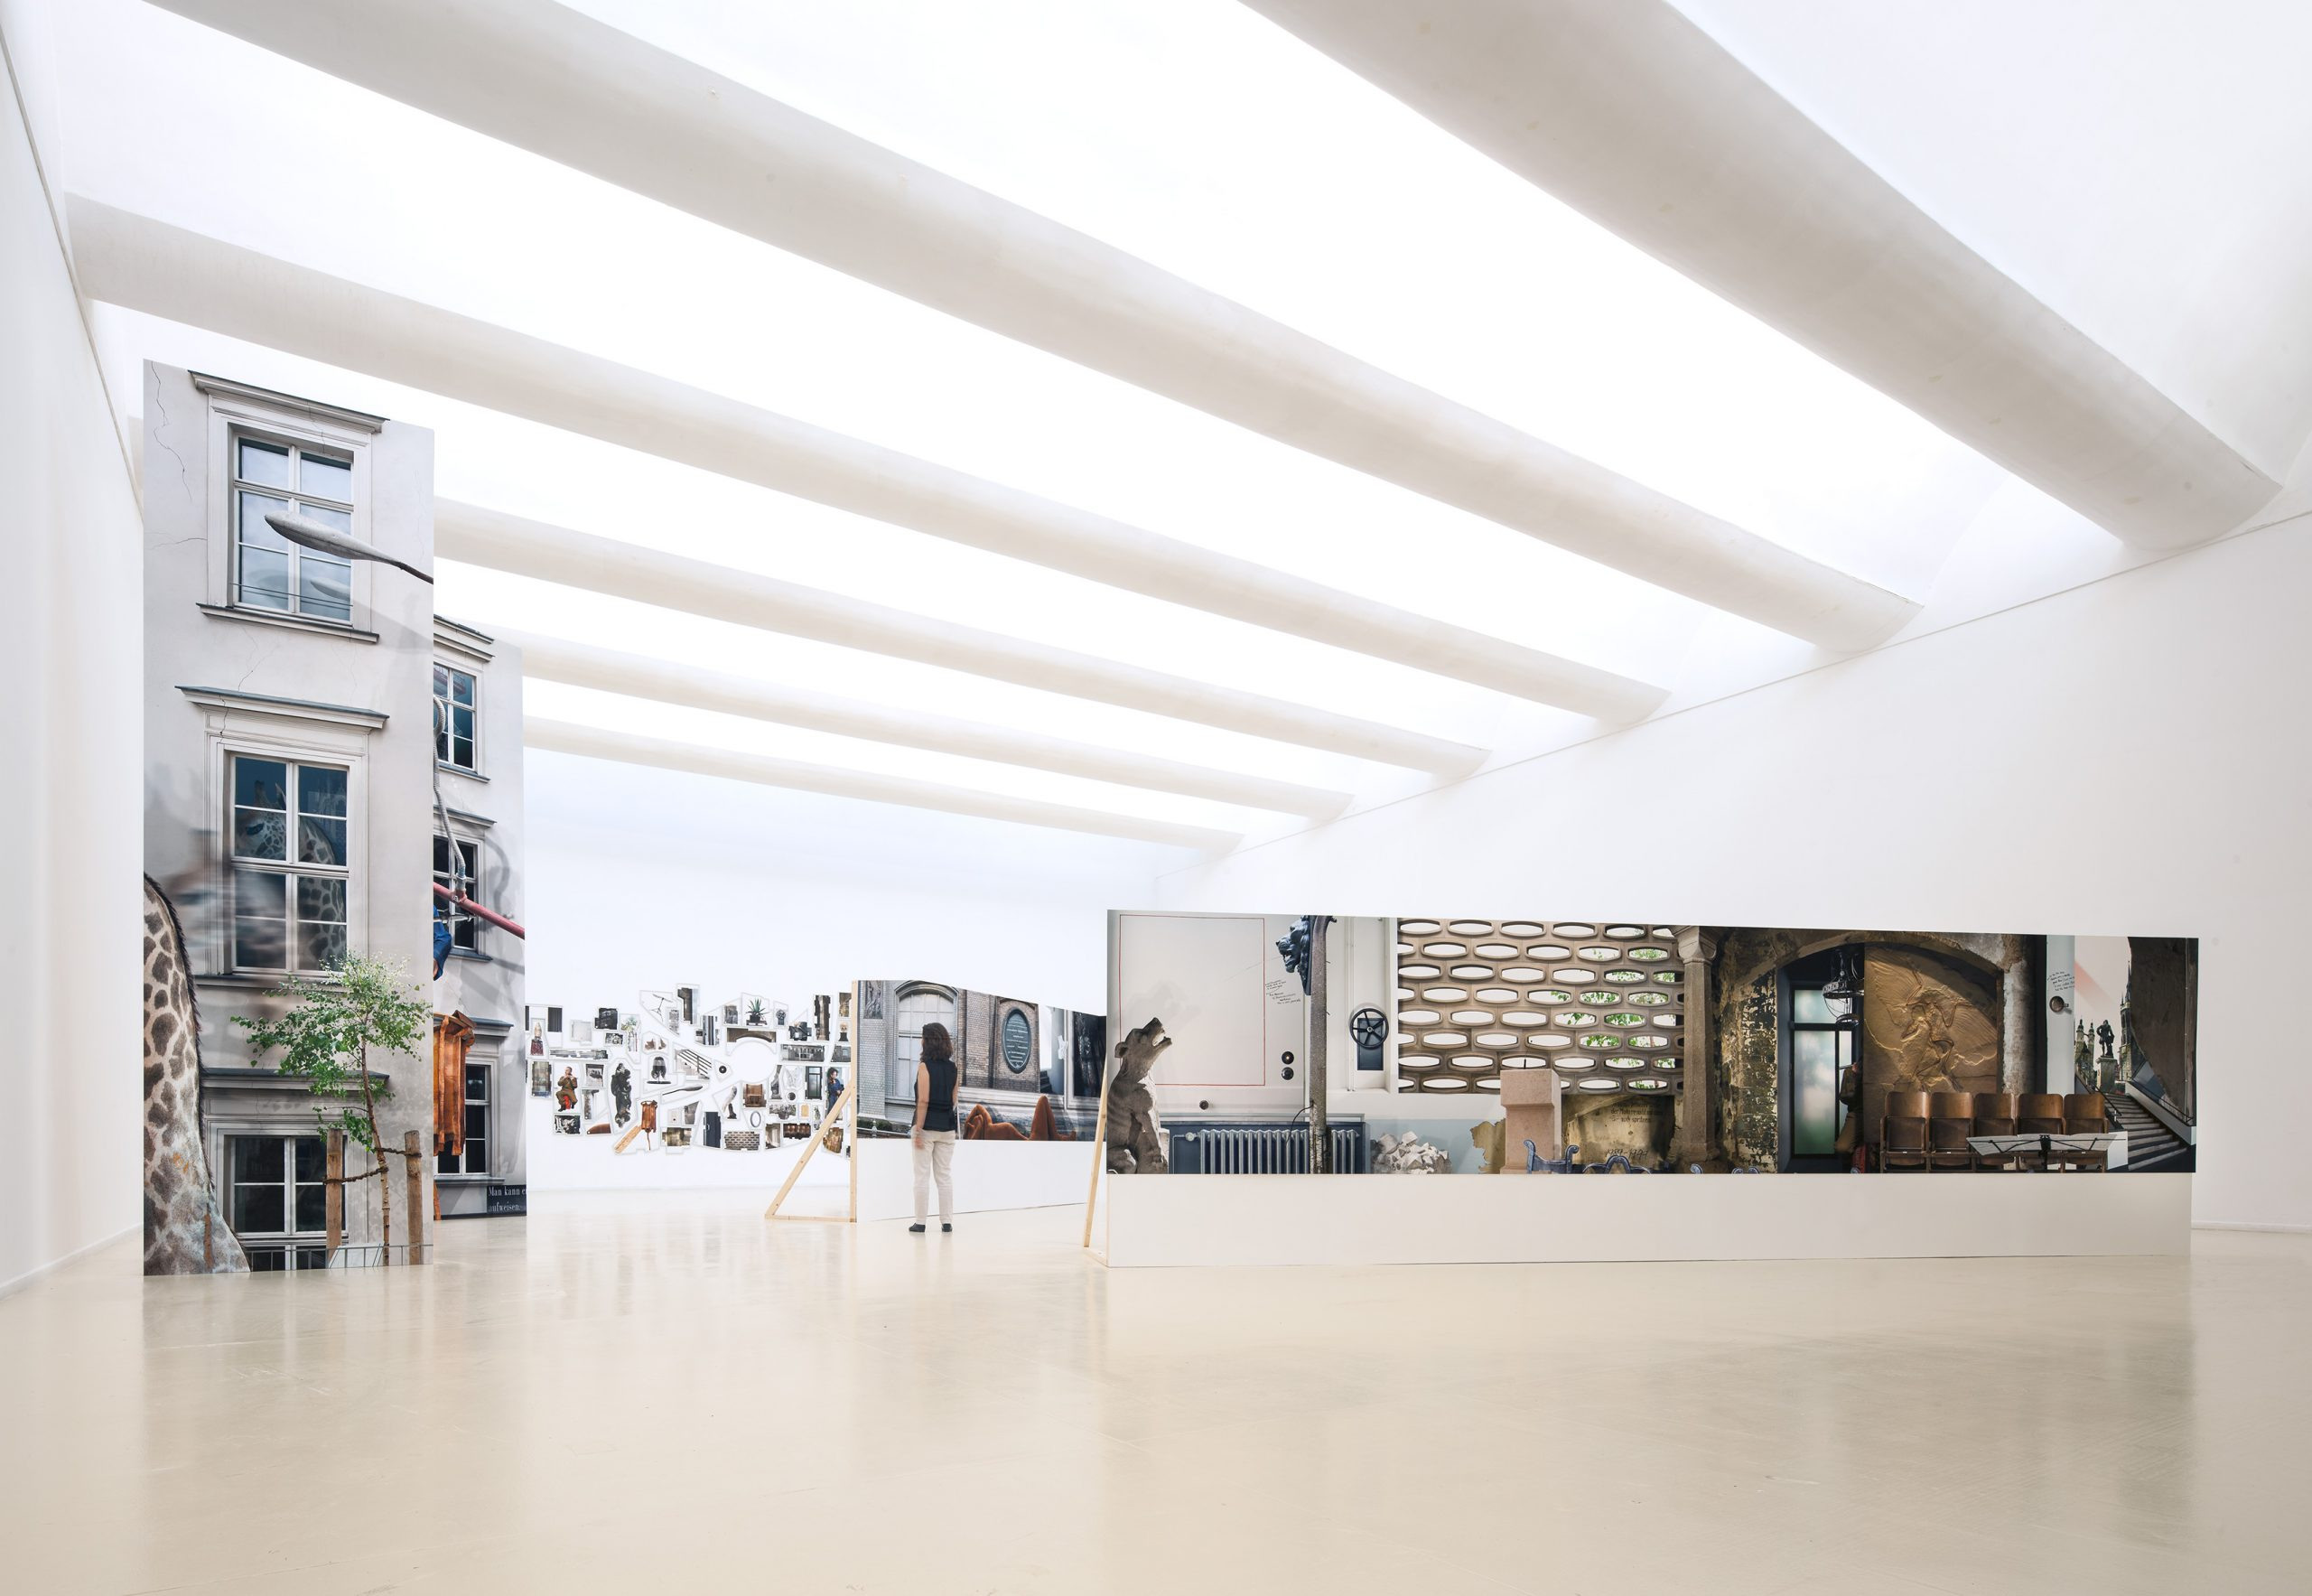 Ilit Azoulay, Implicit Manifestation, 2014, installation view, Herzliya Museum for Contemporary Art